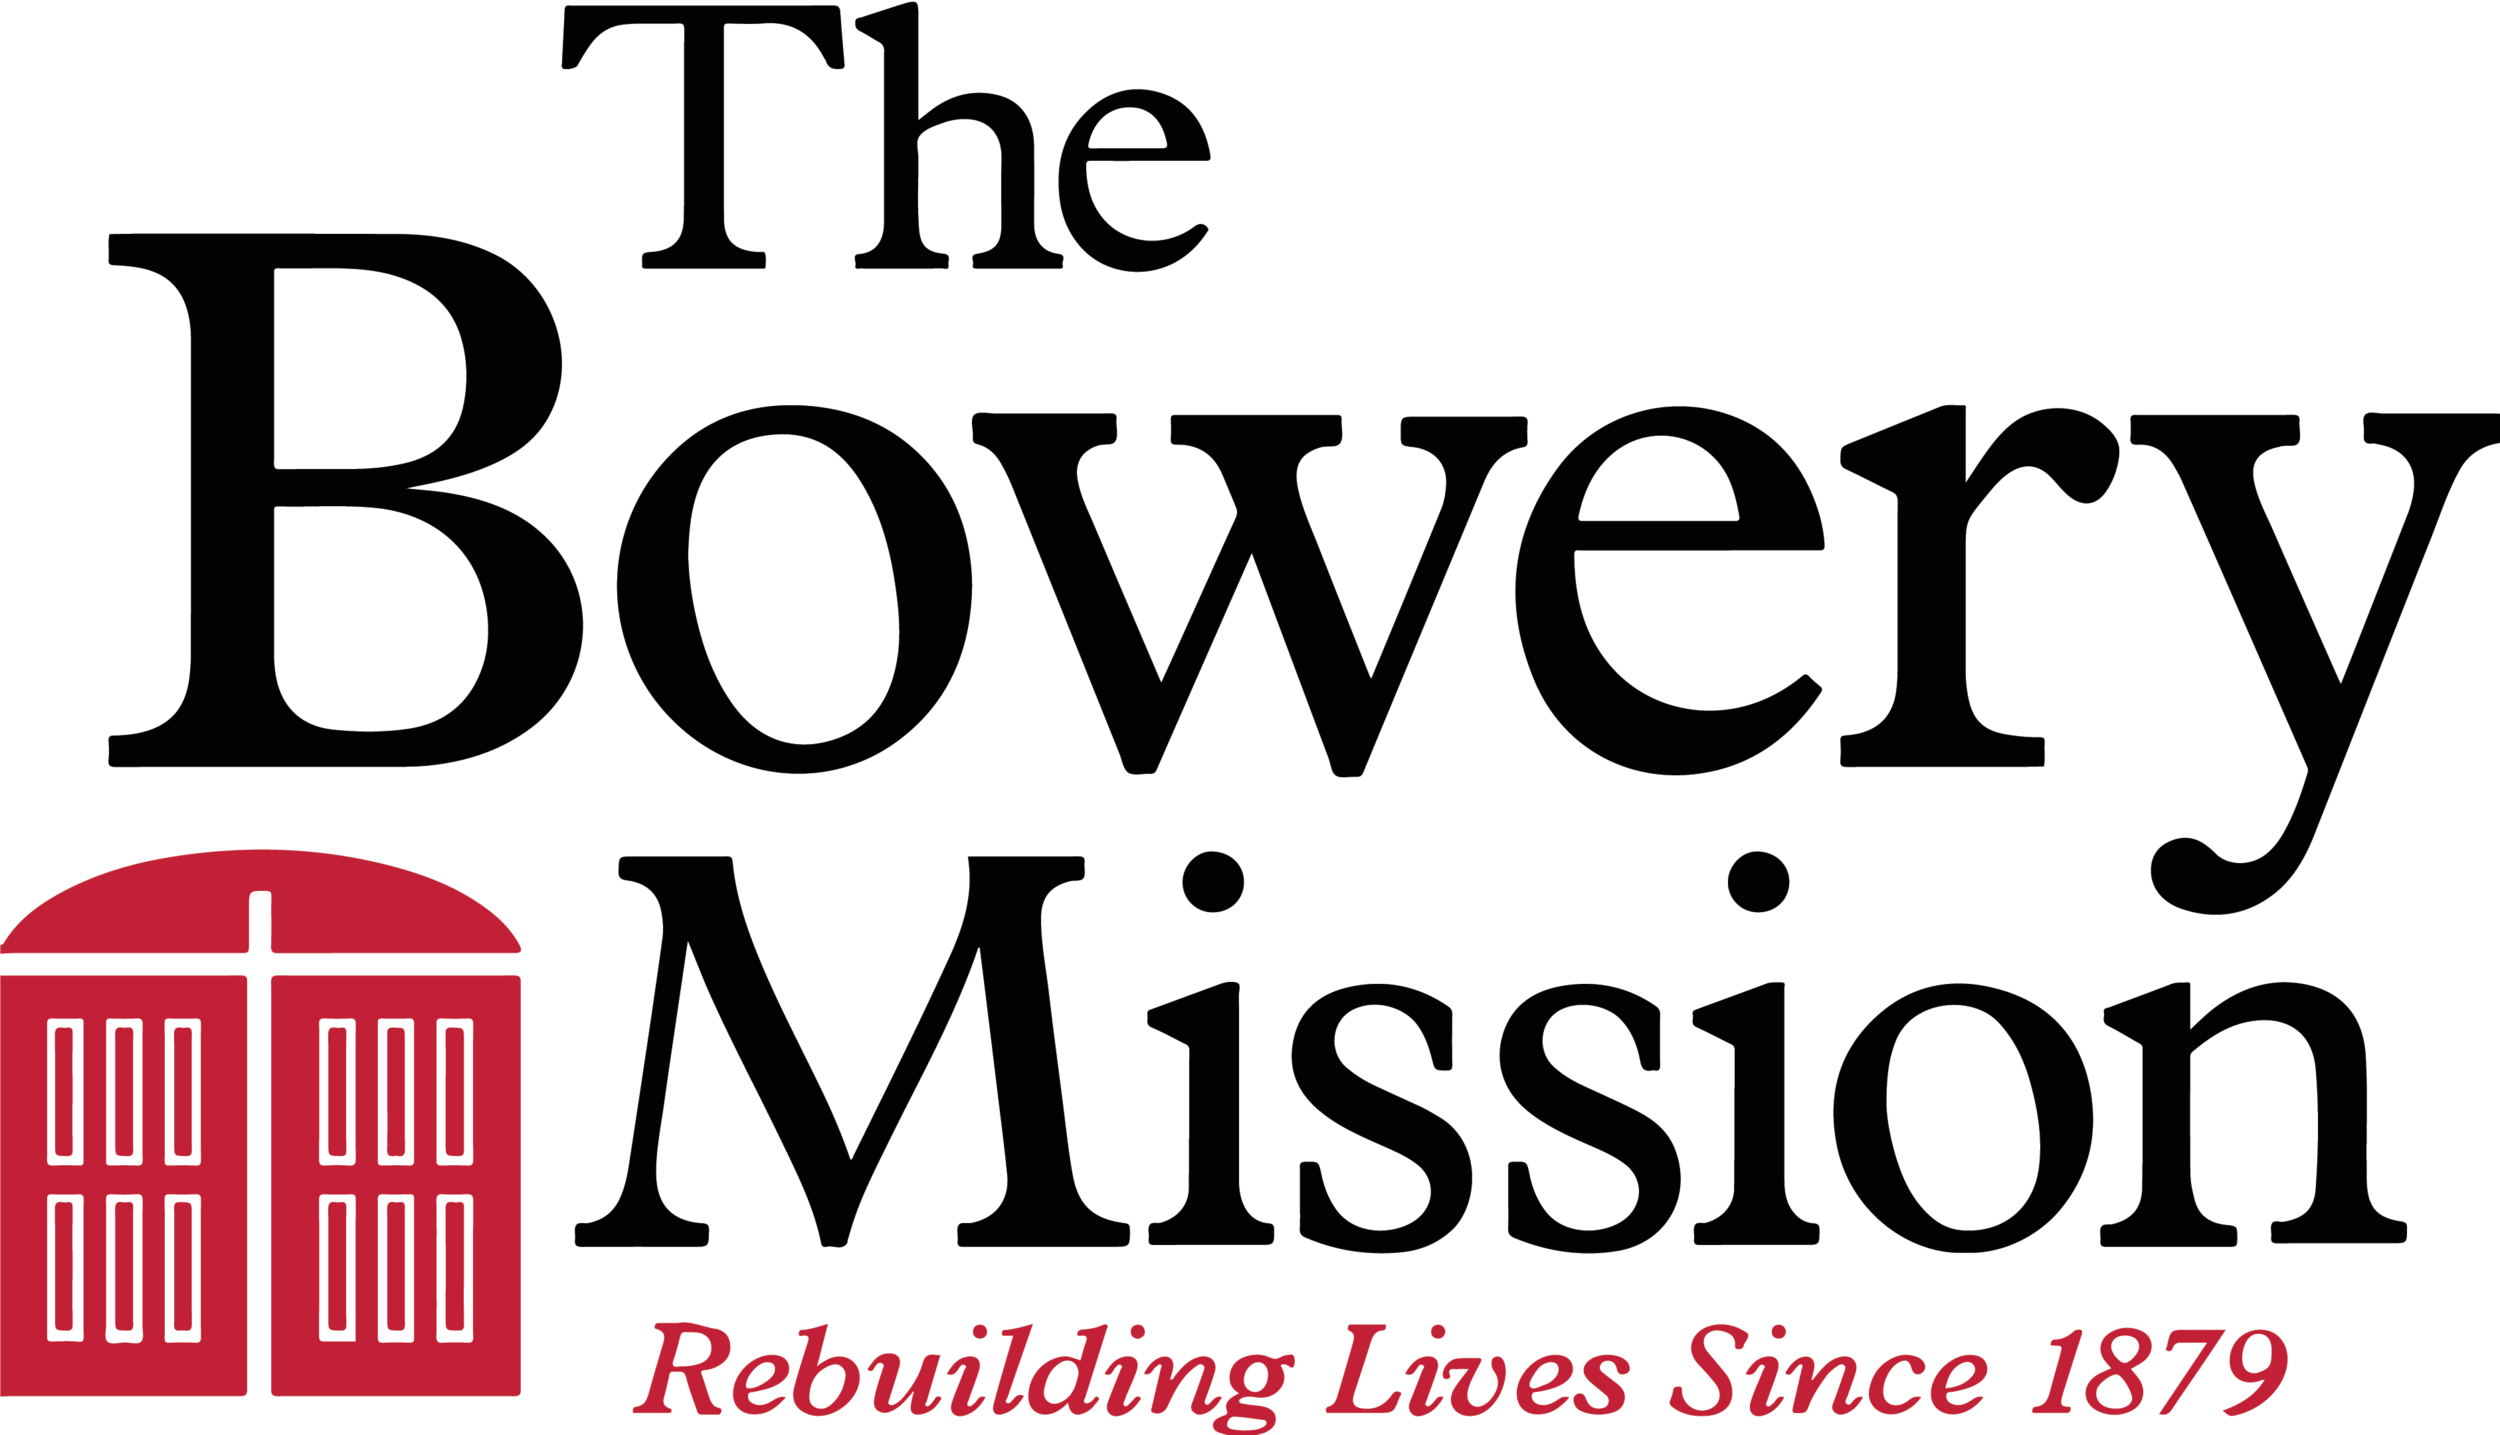 kisspng-the-bowery-mission-east-harlem-poverty-homelessnes-debbie-harry-5b0ef7250cbc63.1215963415277074290522.png